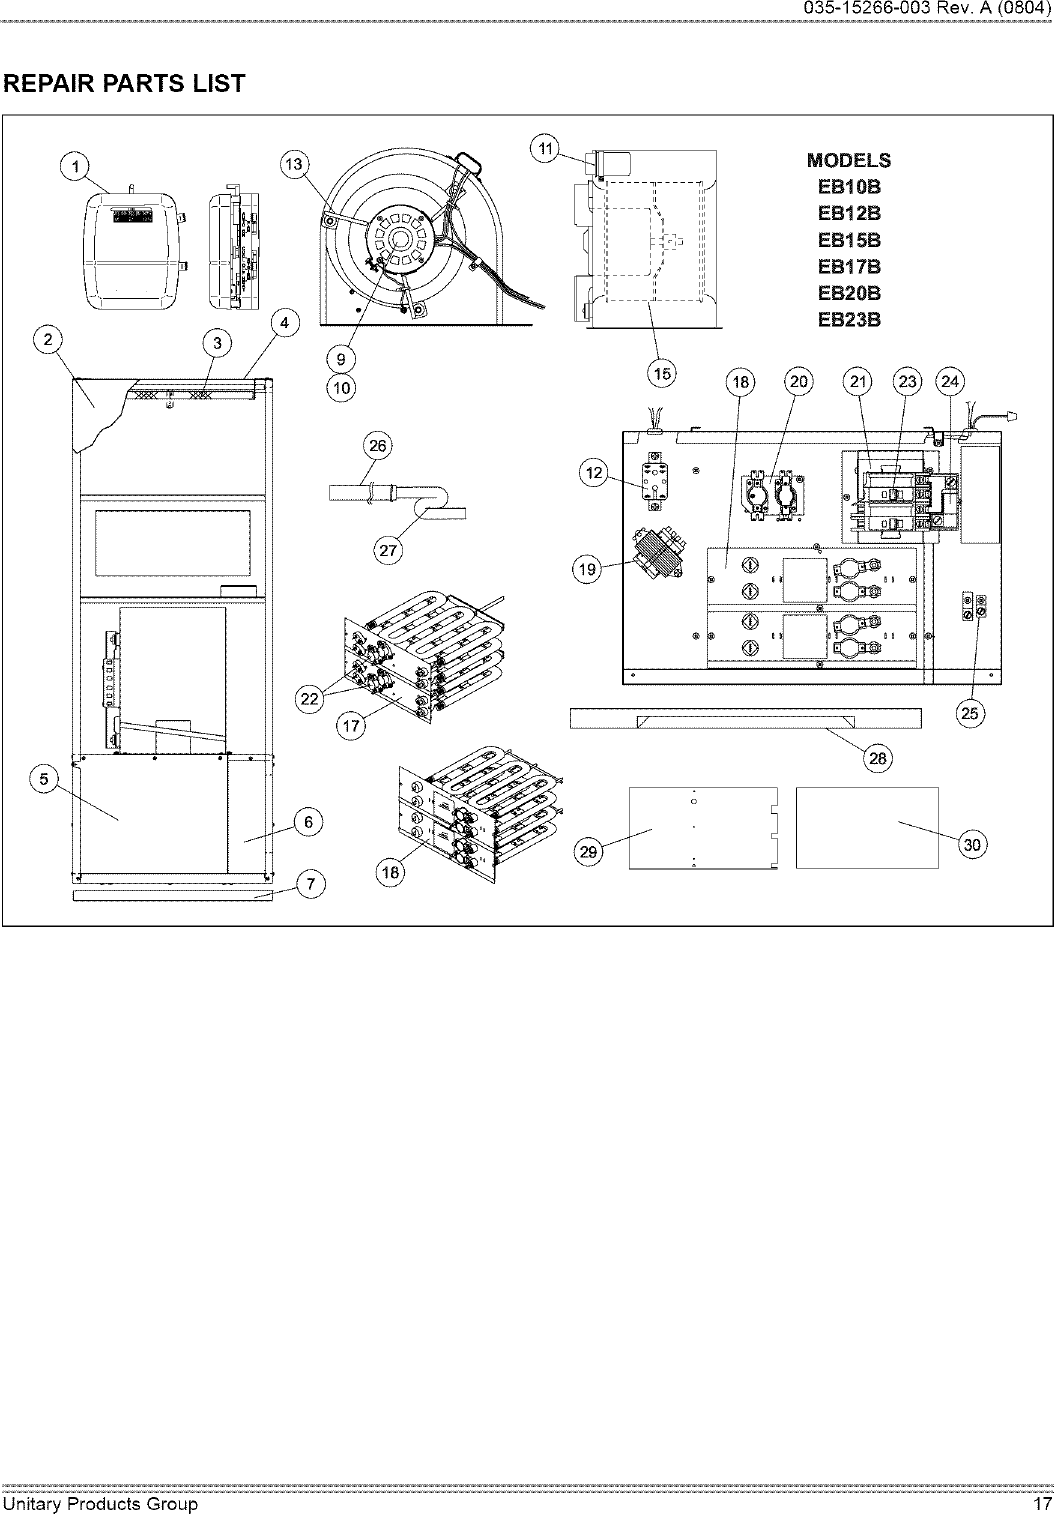 hight resolution of coleman eb12b installation manual manualslib makes it easy to find manuals online